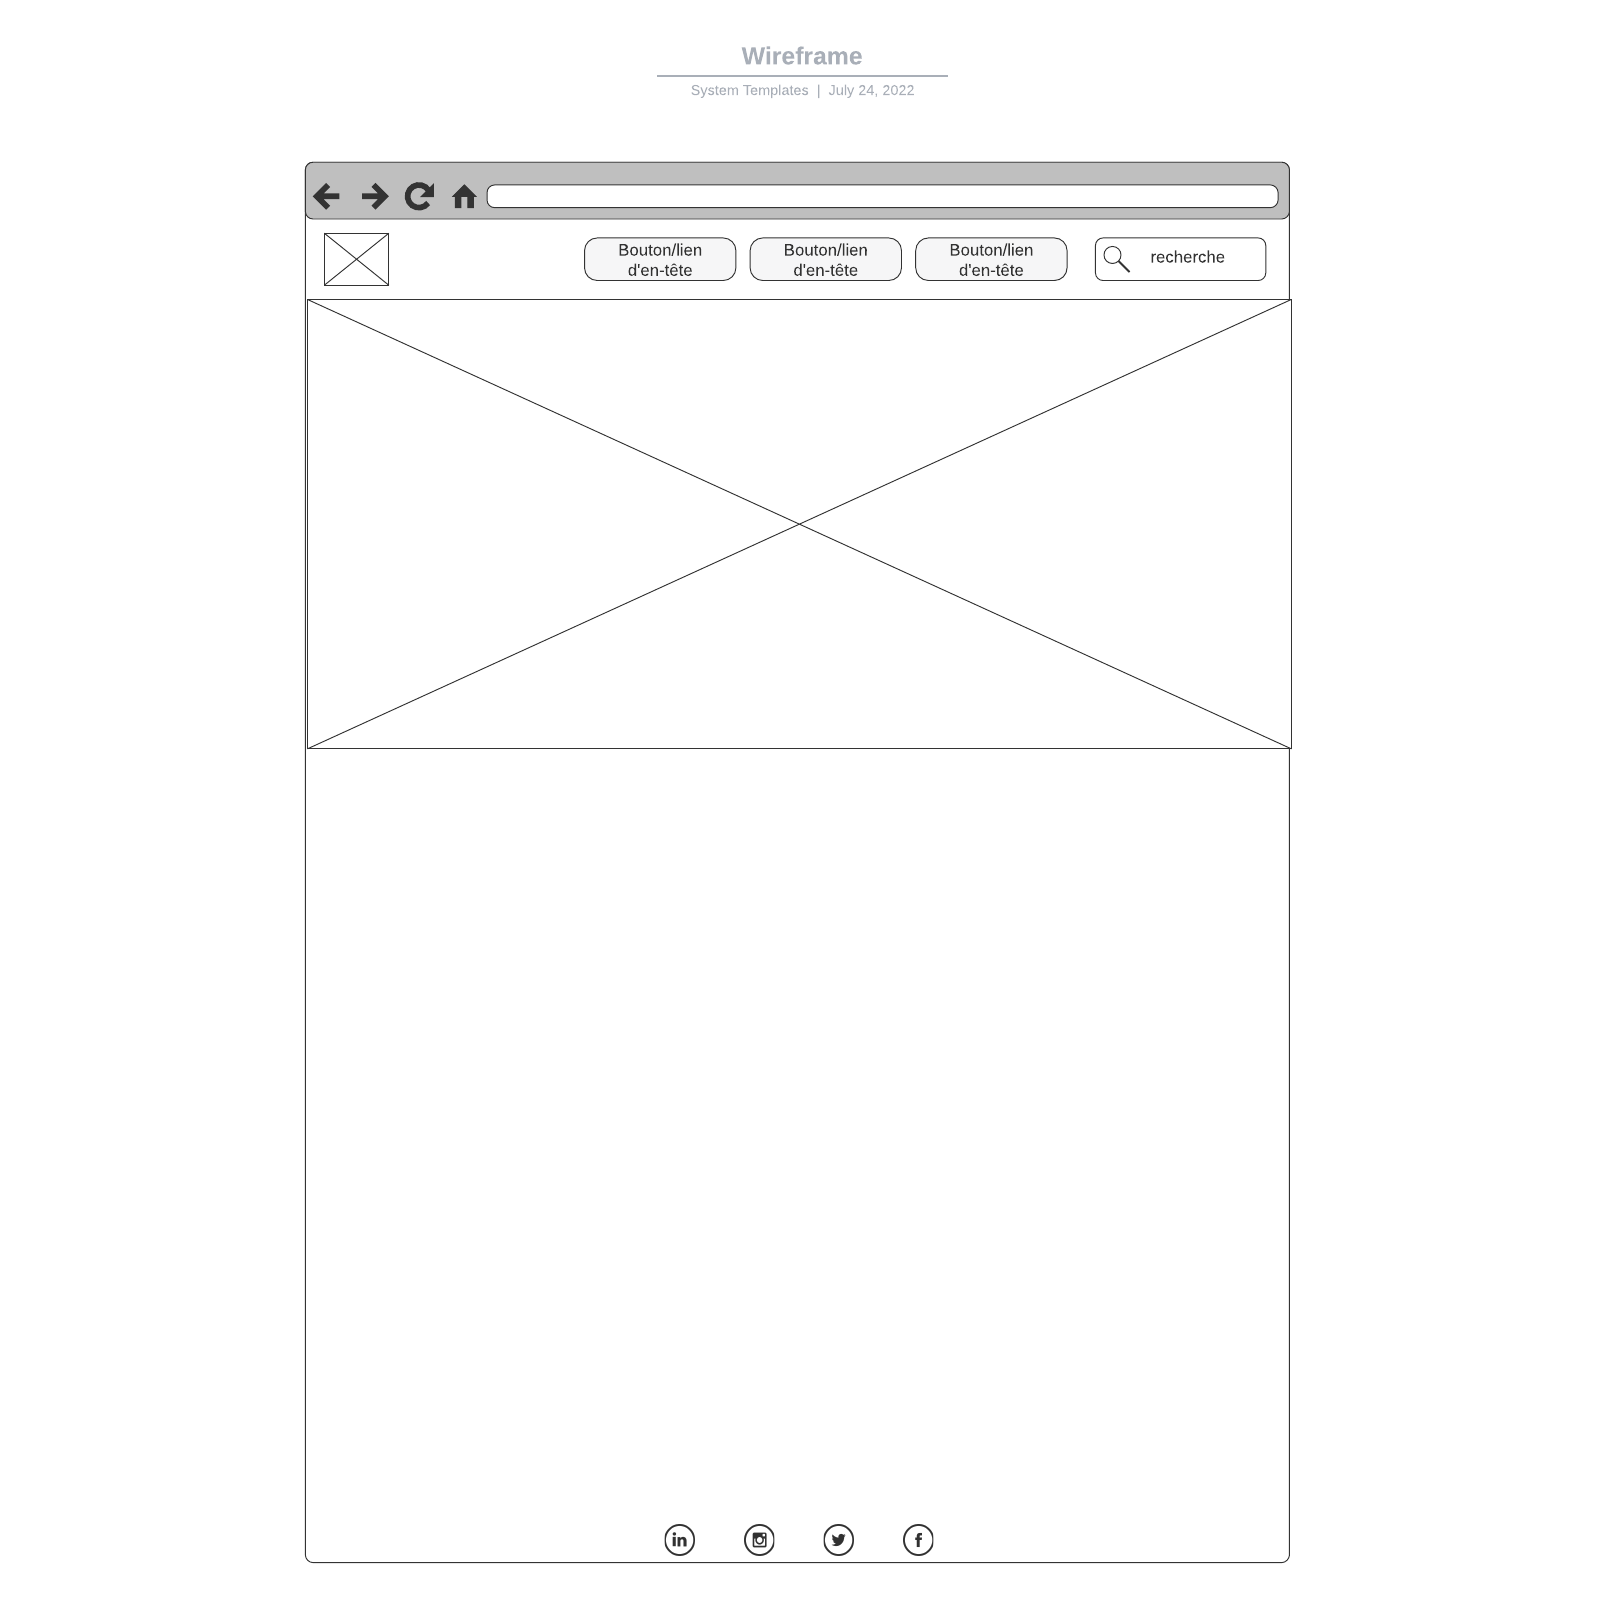 exemple de wireframe vierge